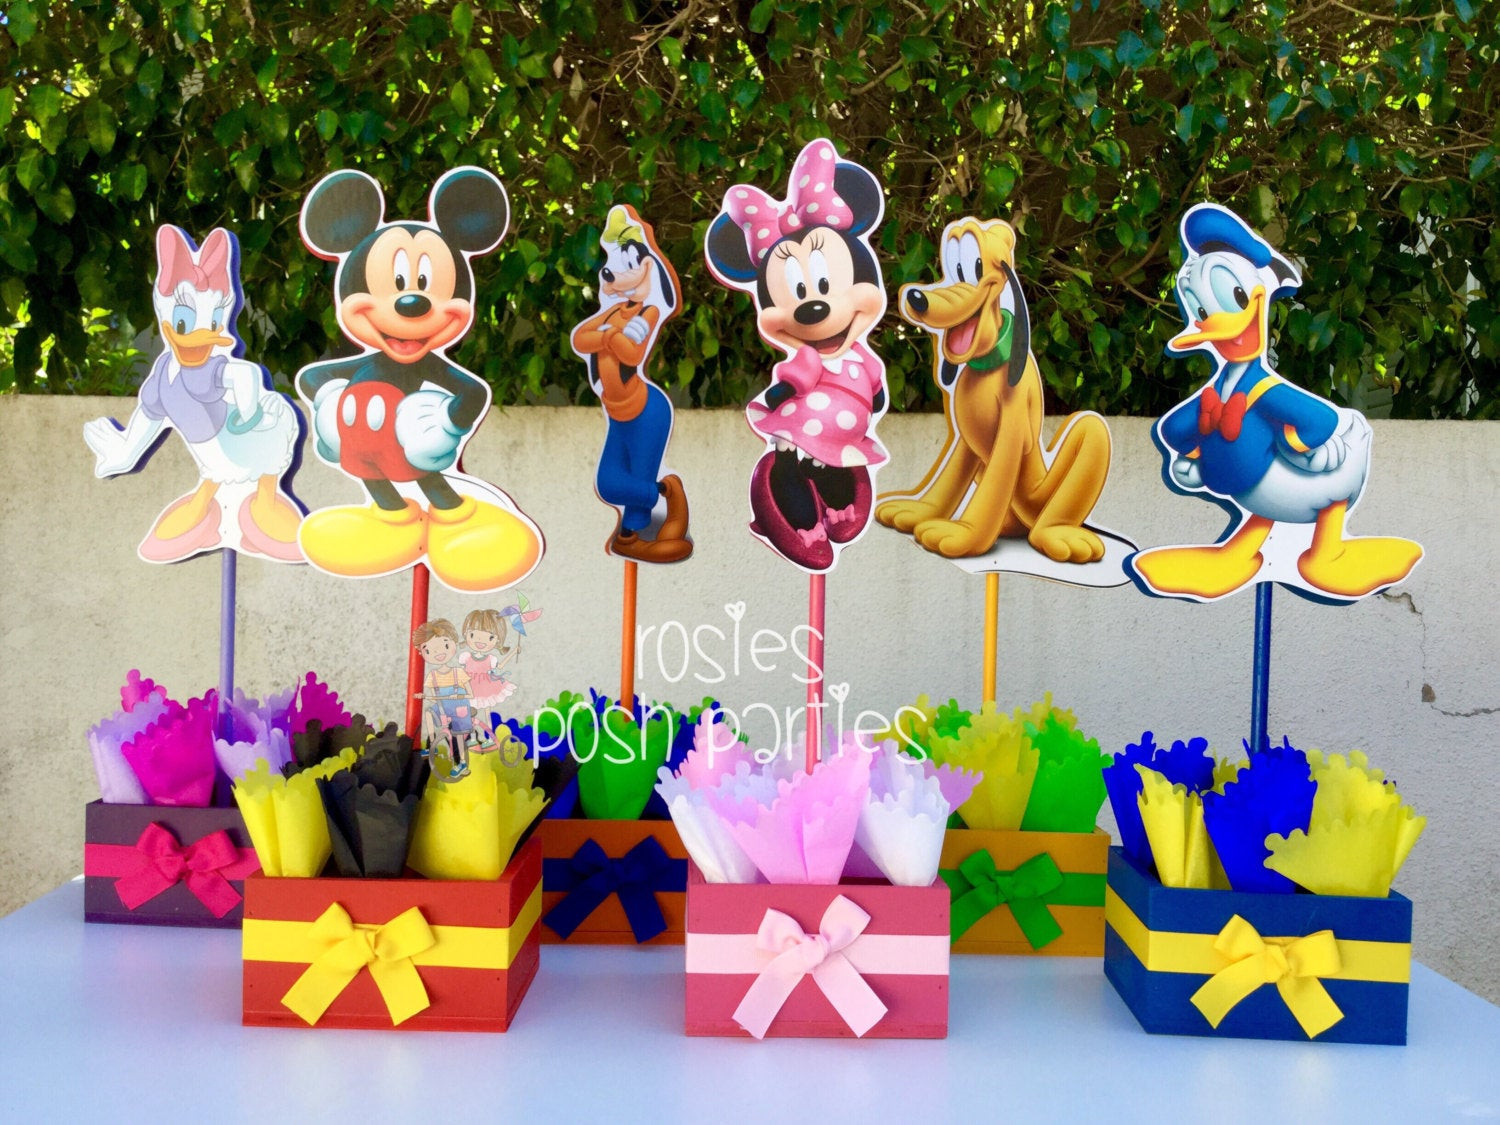 Best ideas about Mickey Mouse Clubhouse Birthday Decorations . Save or Pin Mickey Mouse Clubhouse birthday party wood by Now.